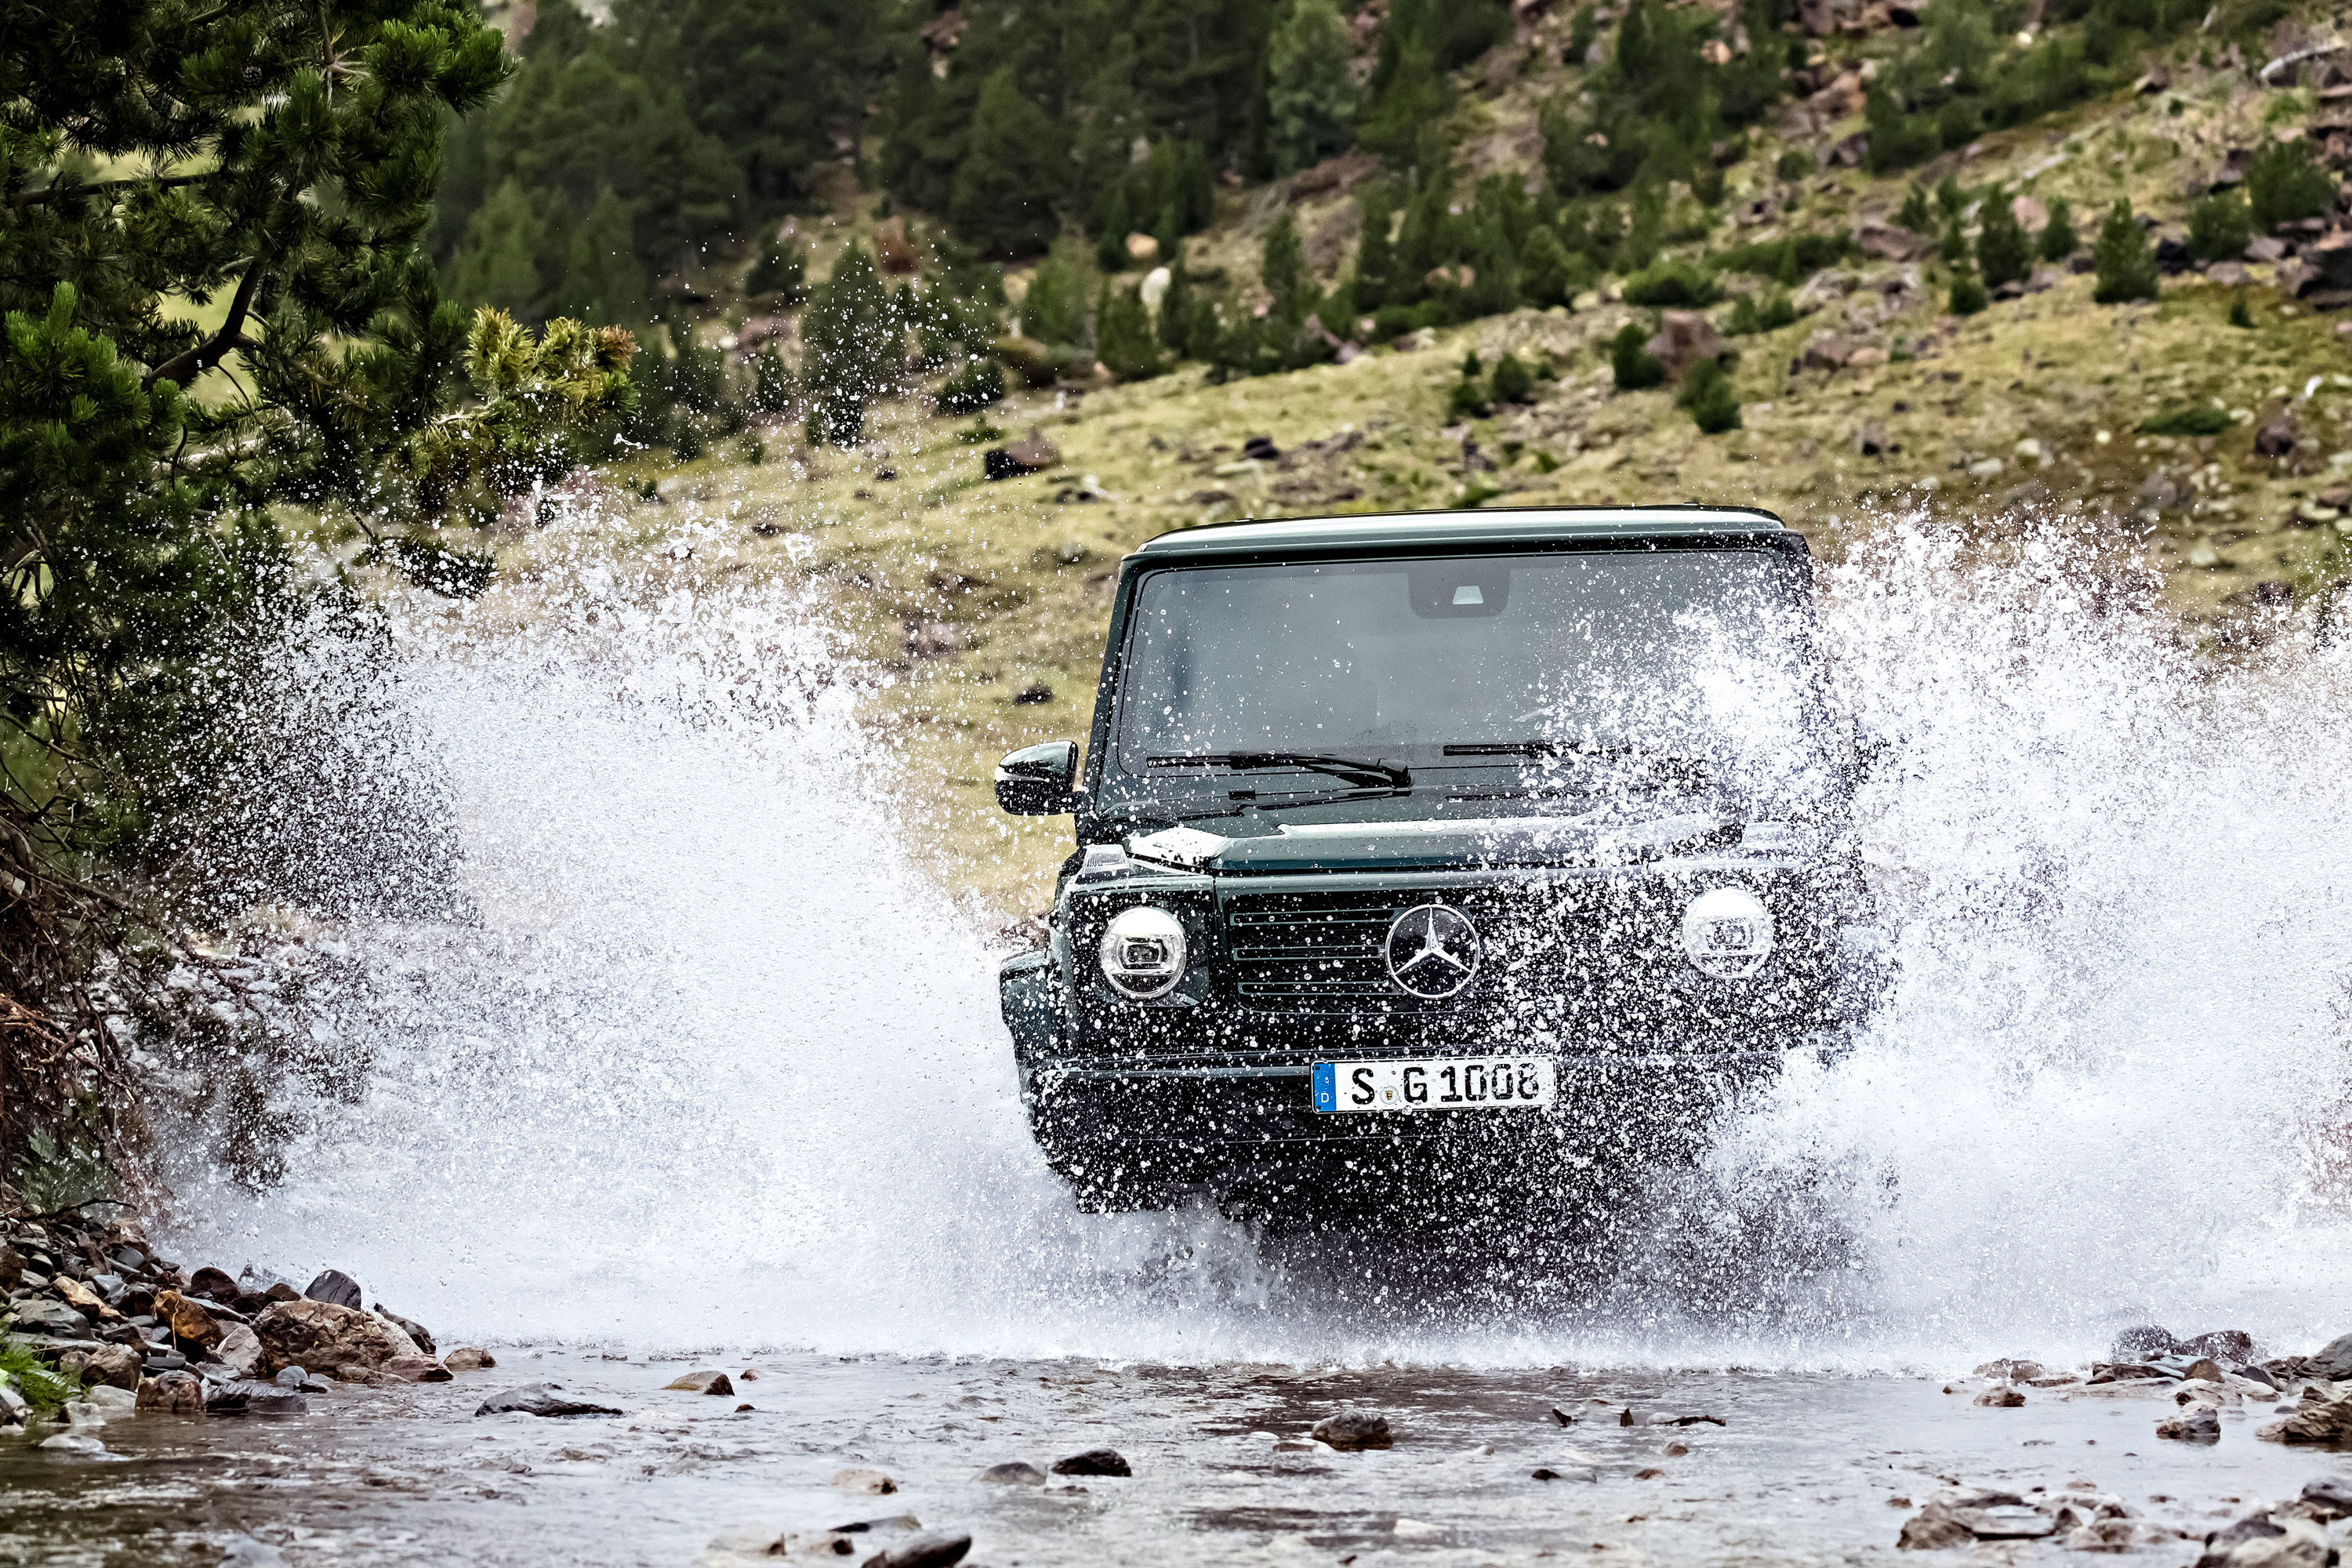 2019 Mercedes-Benz G-Class splashing through a river